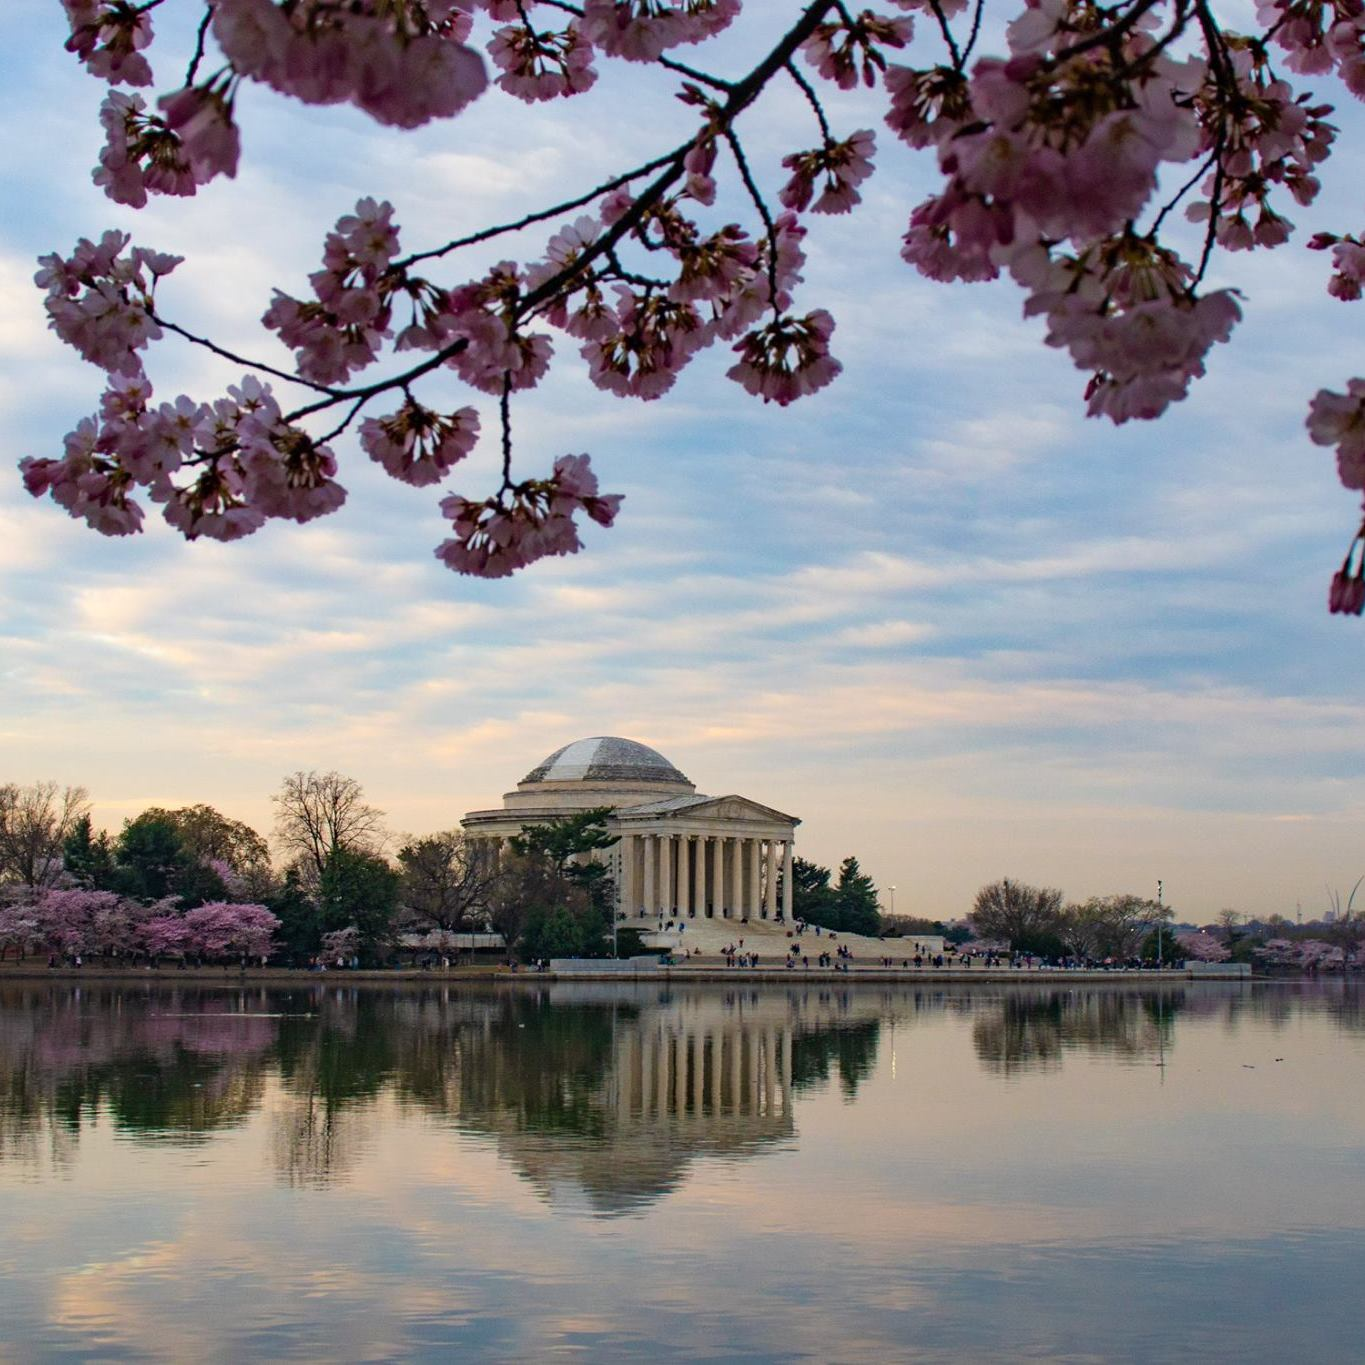 Photo of Jefferson Memorial with cherry blossoms and nice reflection in pool.